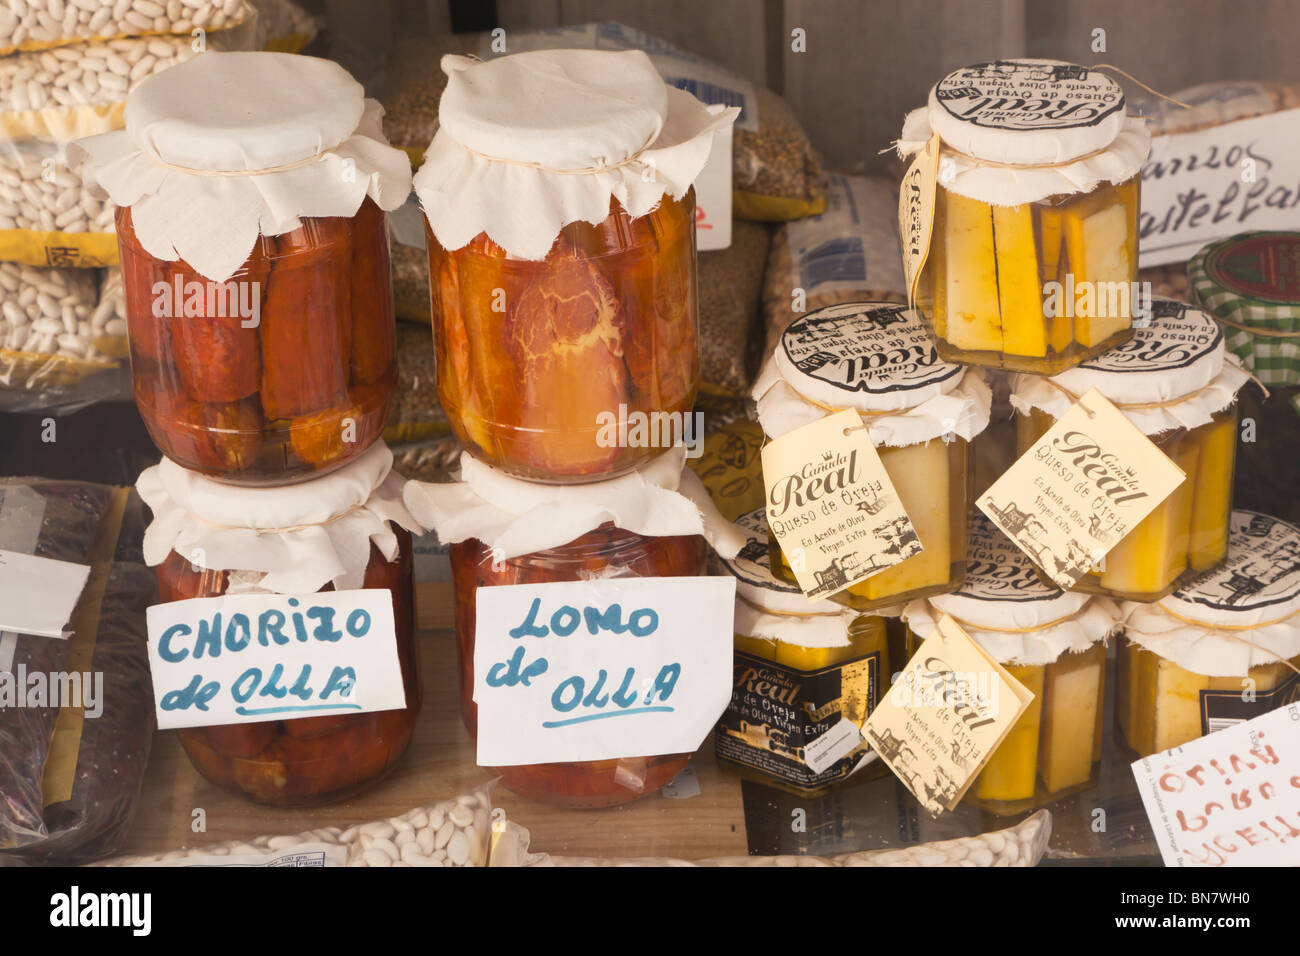 Avila, Avila Province, Spain. Bottles of preserved meats and cheeses. - Stock Image